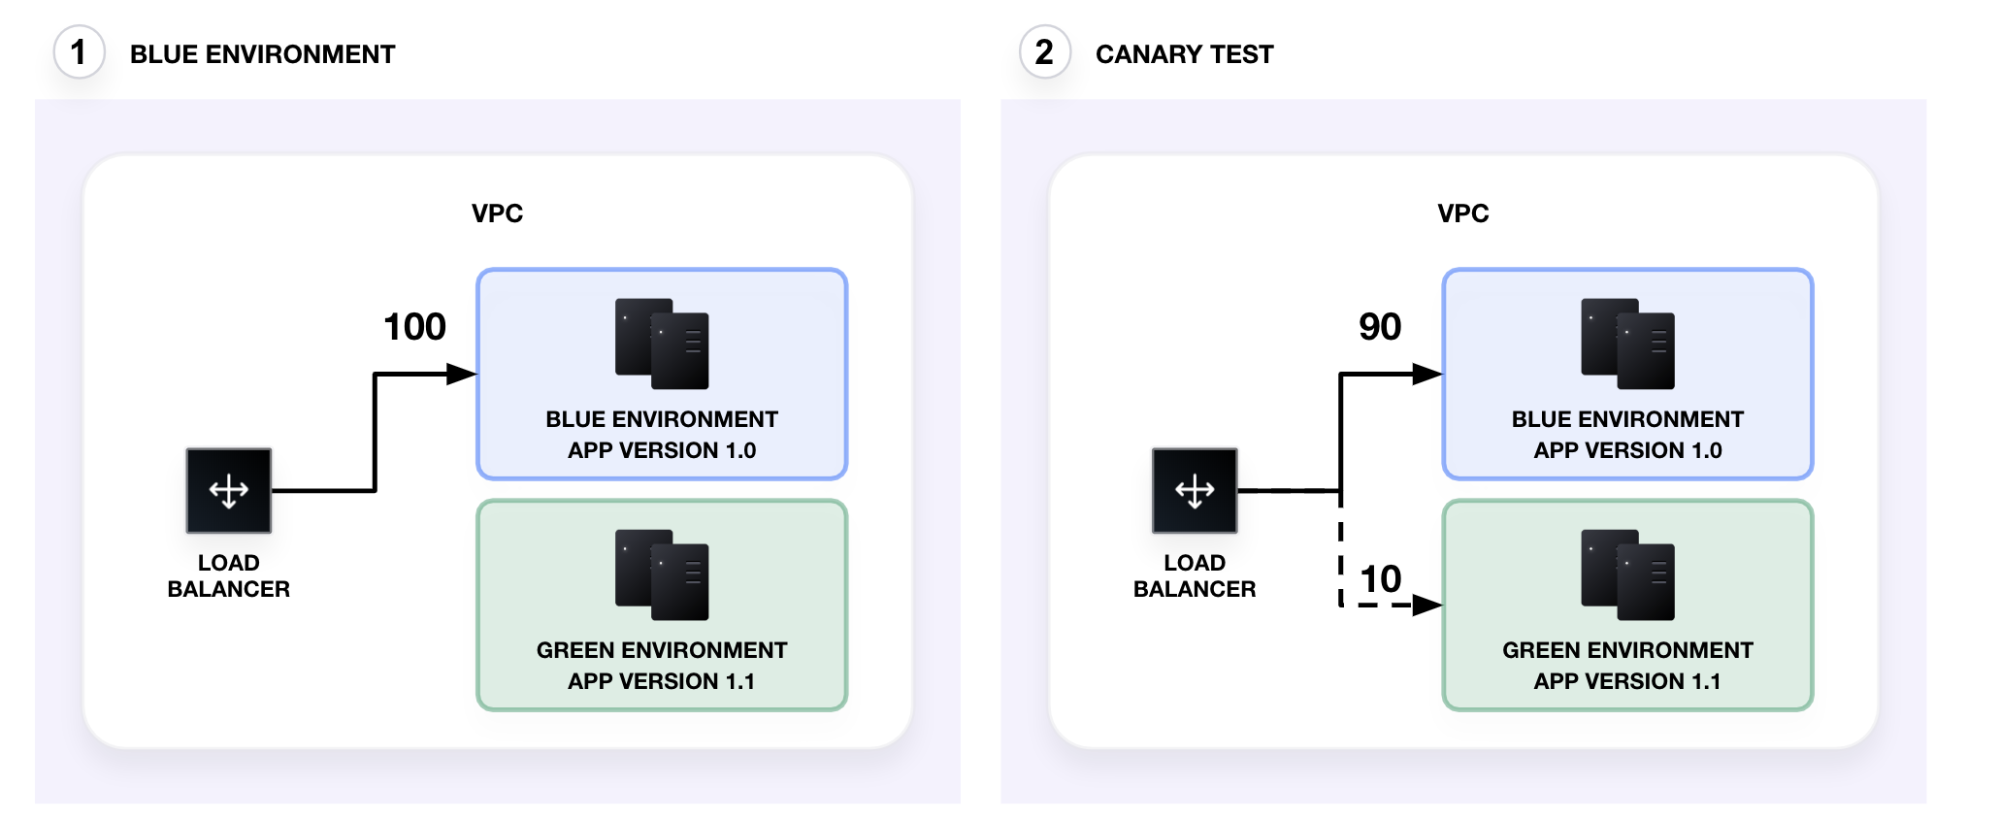 Canary test/deployment. All traffic is directed to the blue environment initially. When you perform a canary test, 10% of the traffic is directed to the green environment.